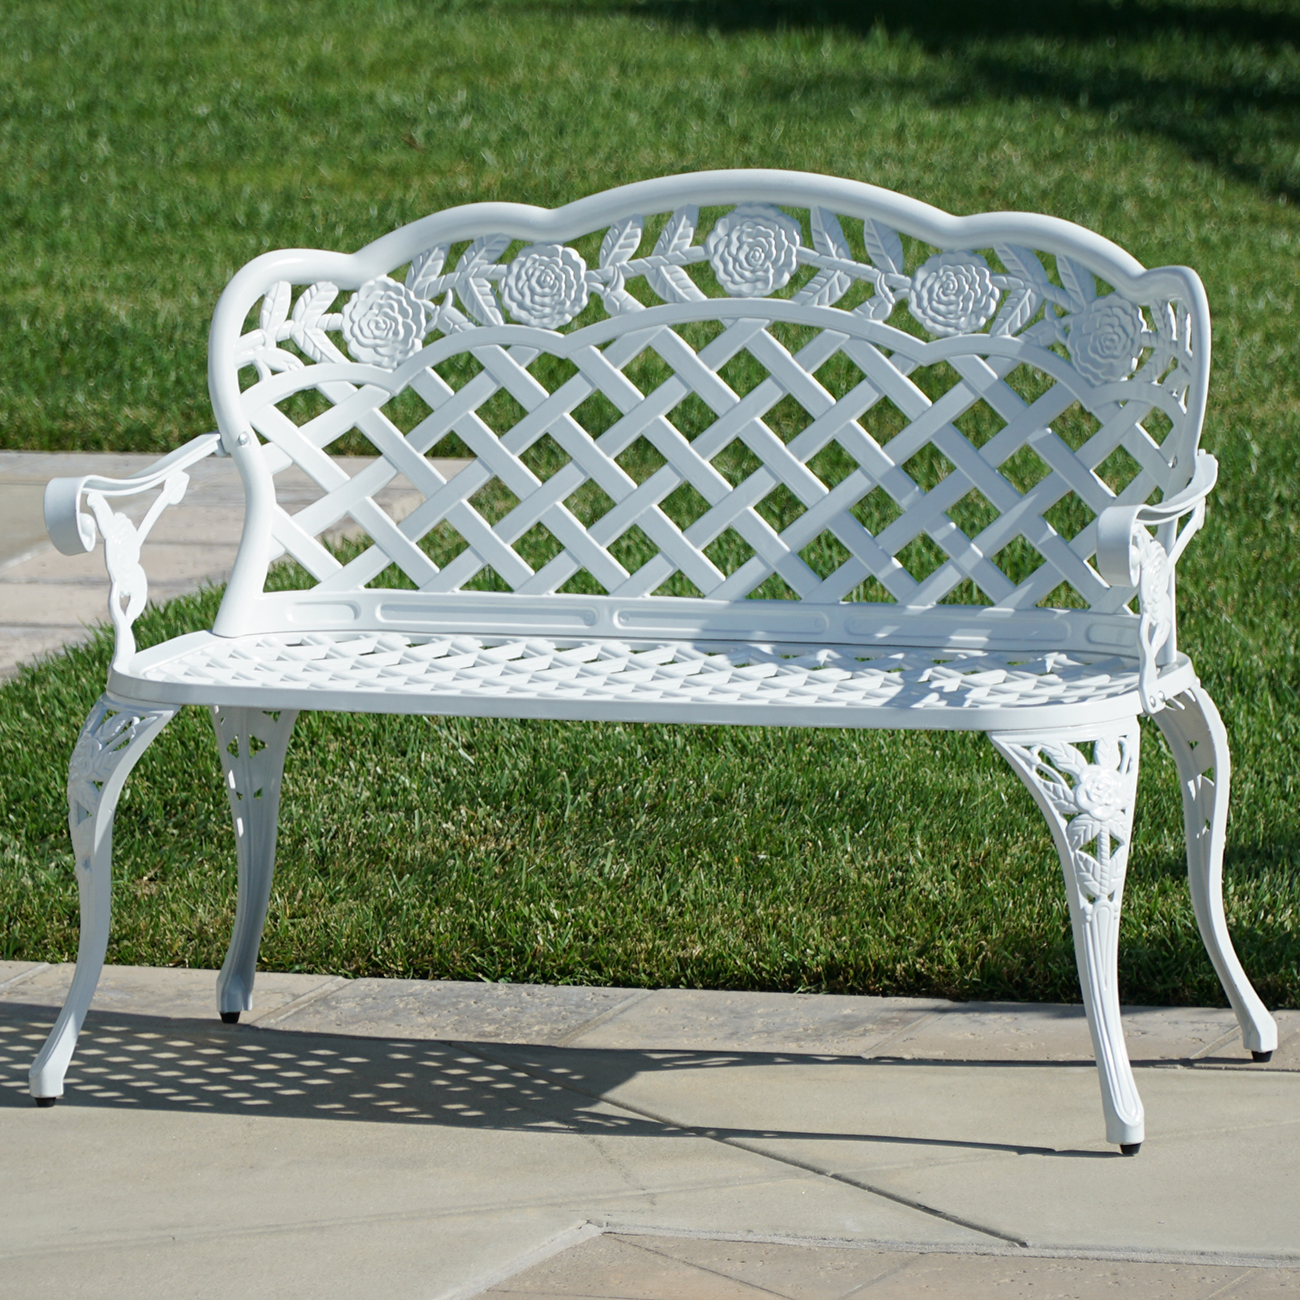 Belleze Outdoor Garden Bench Antique Cast Aluminum Backyard Furniture Patio Porch, White by Belleze